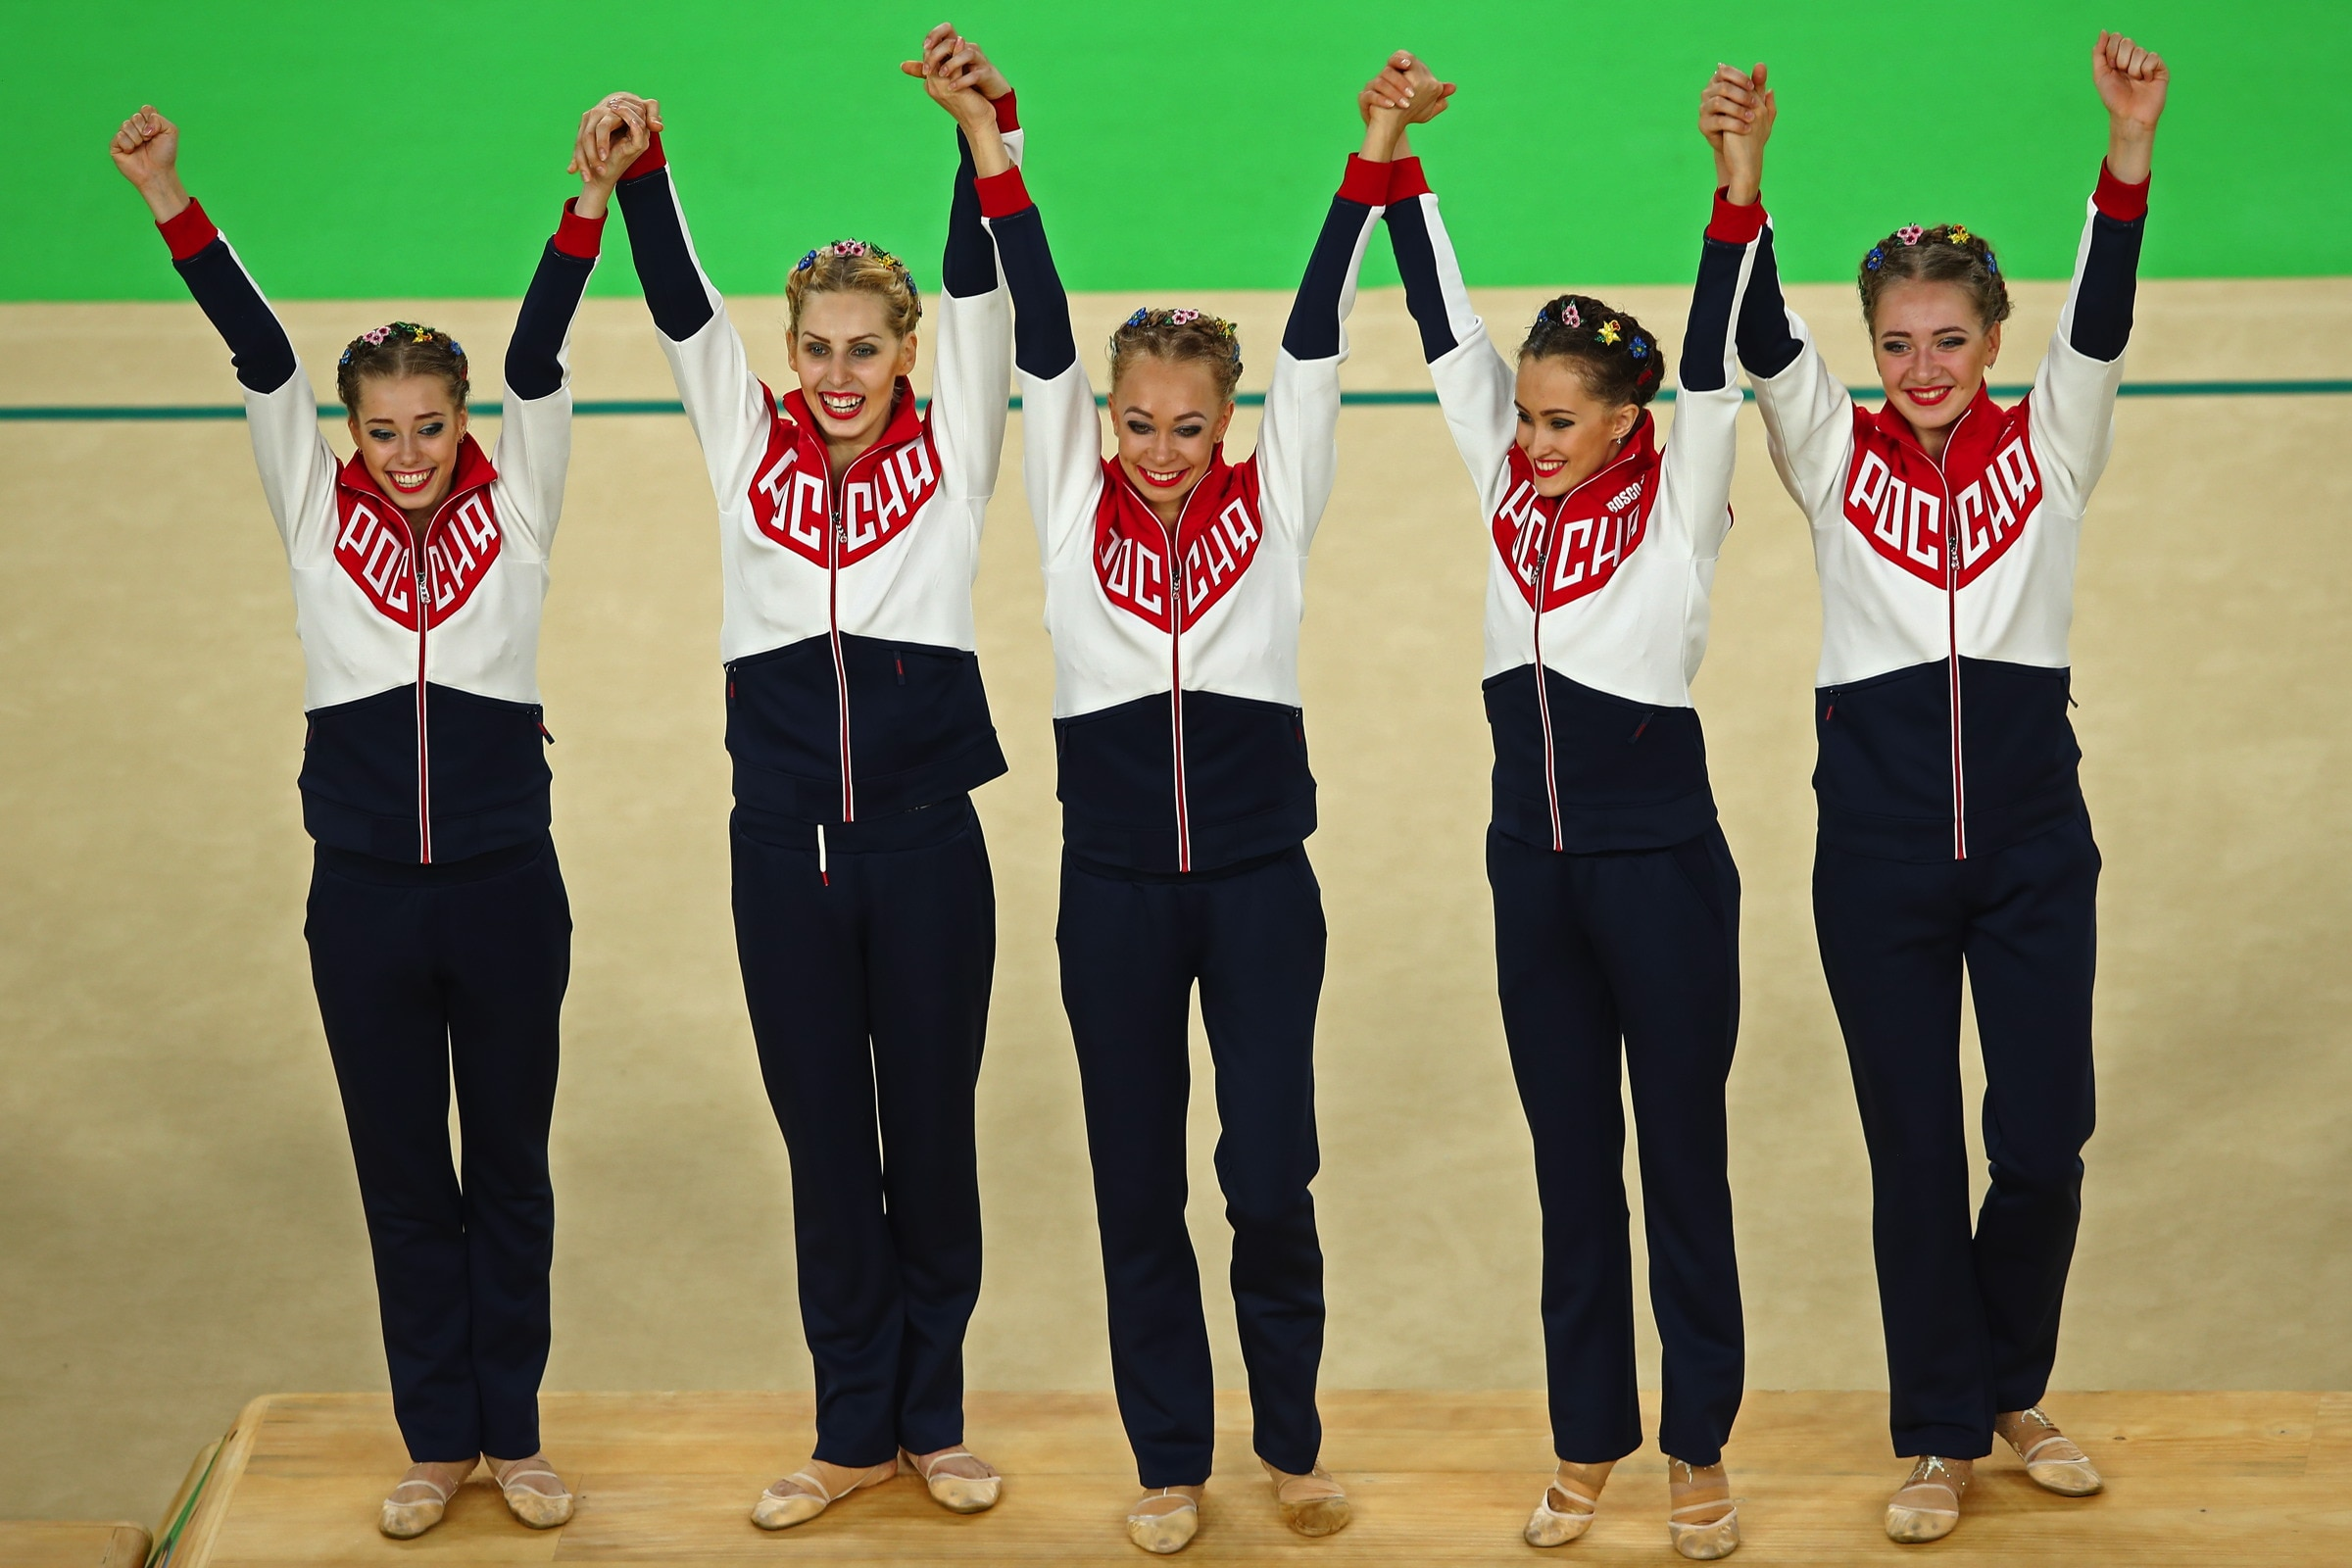 Gymnastics Rhythmic - Women's team all-around